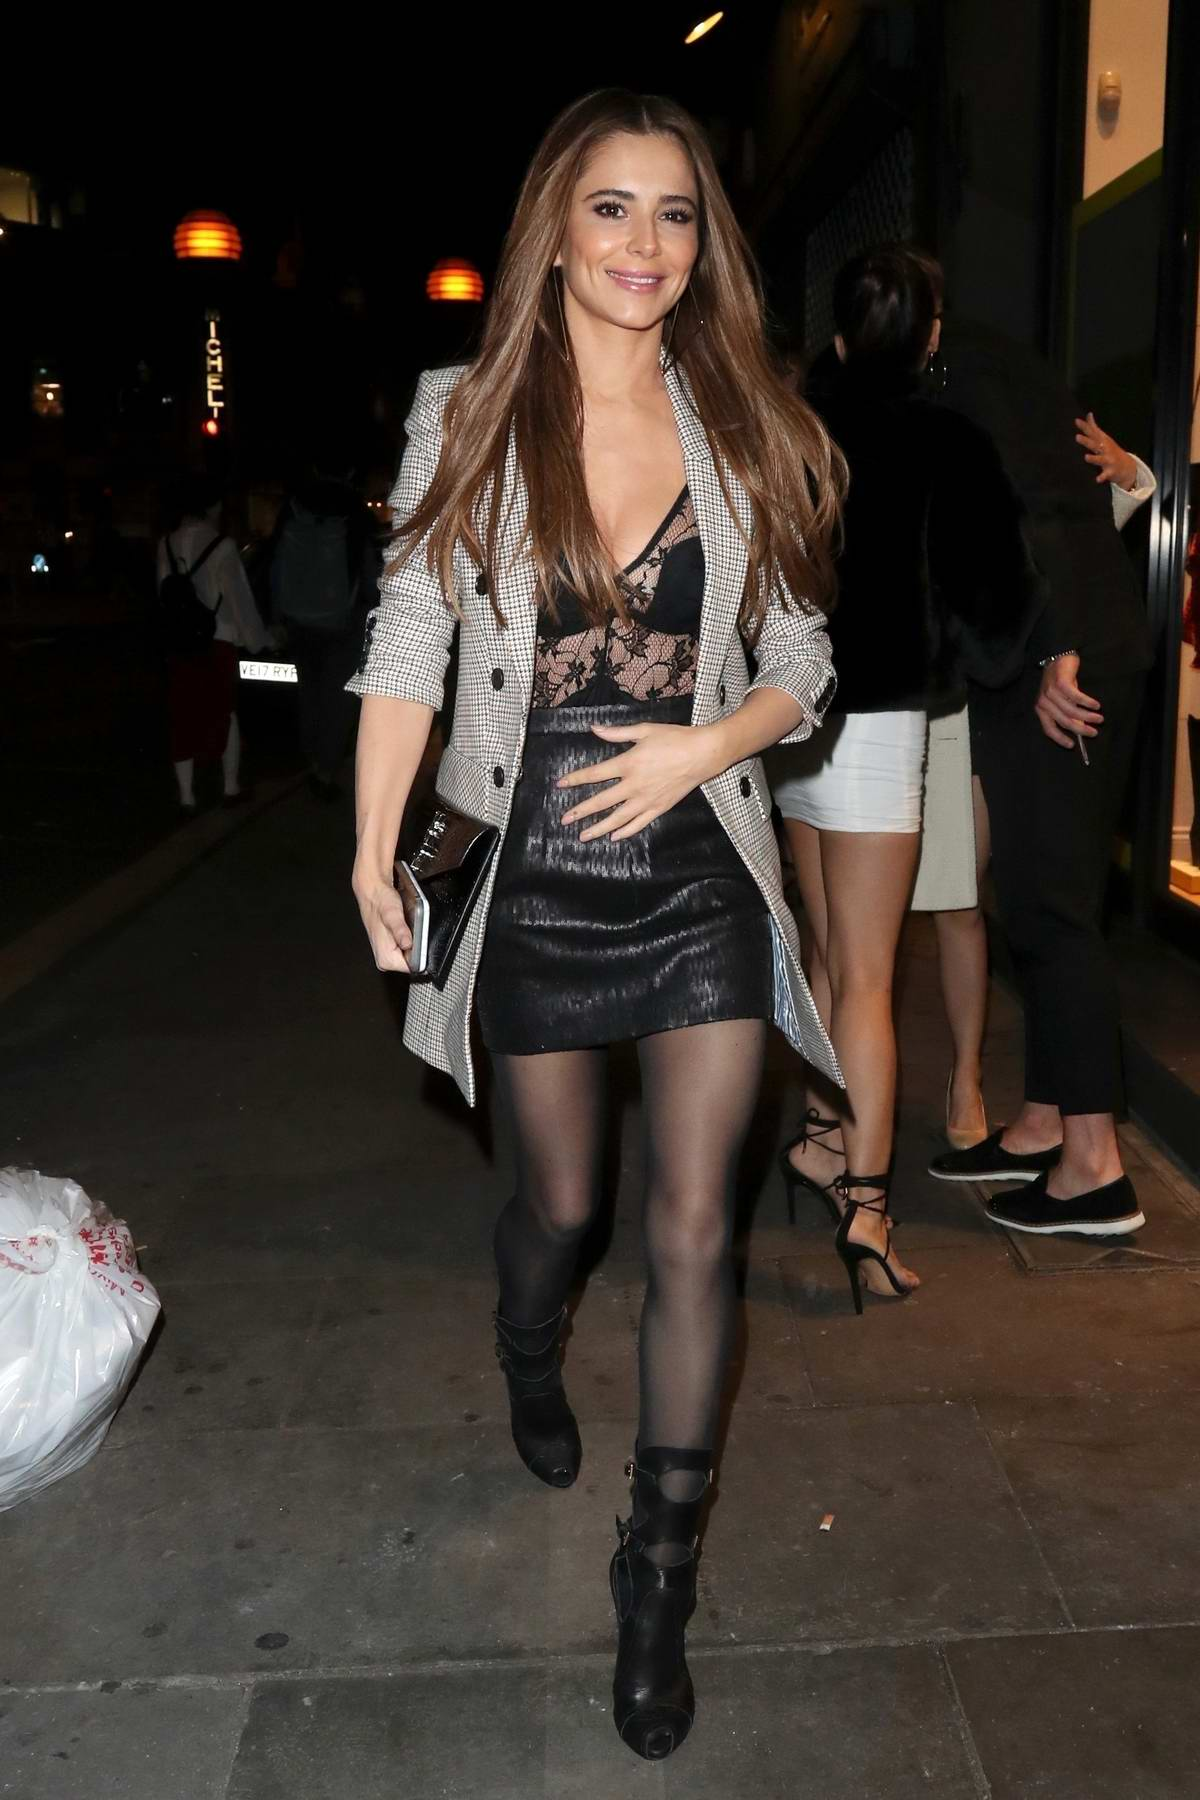 Cheryl Tweedy attends Nicola Roberts' 34th birthday party at Ours Restaurant in London, UK